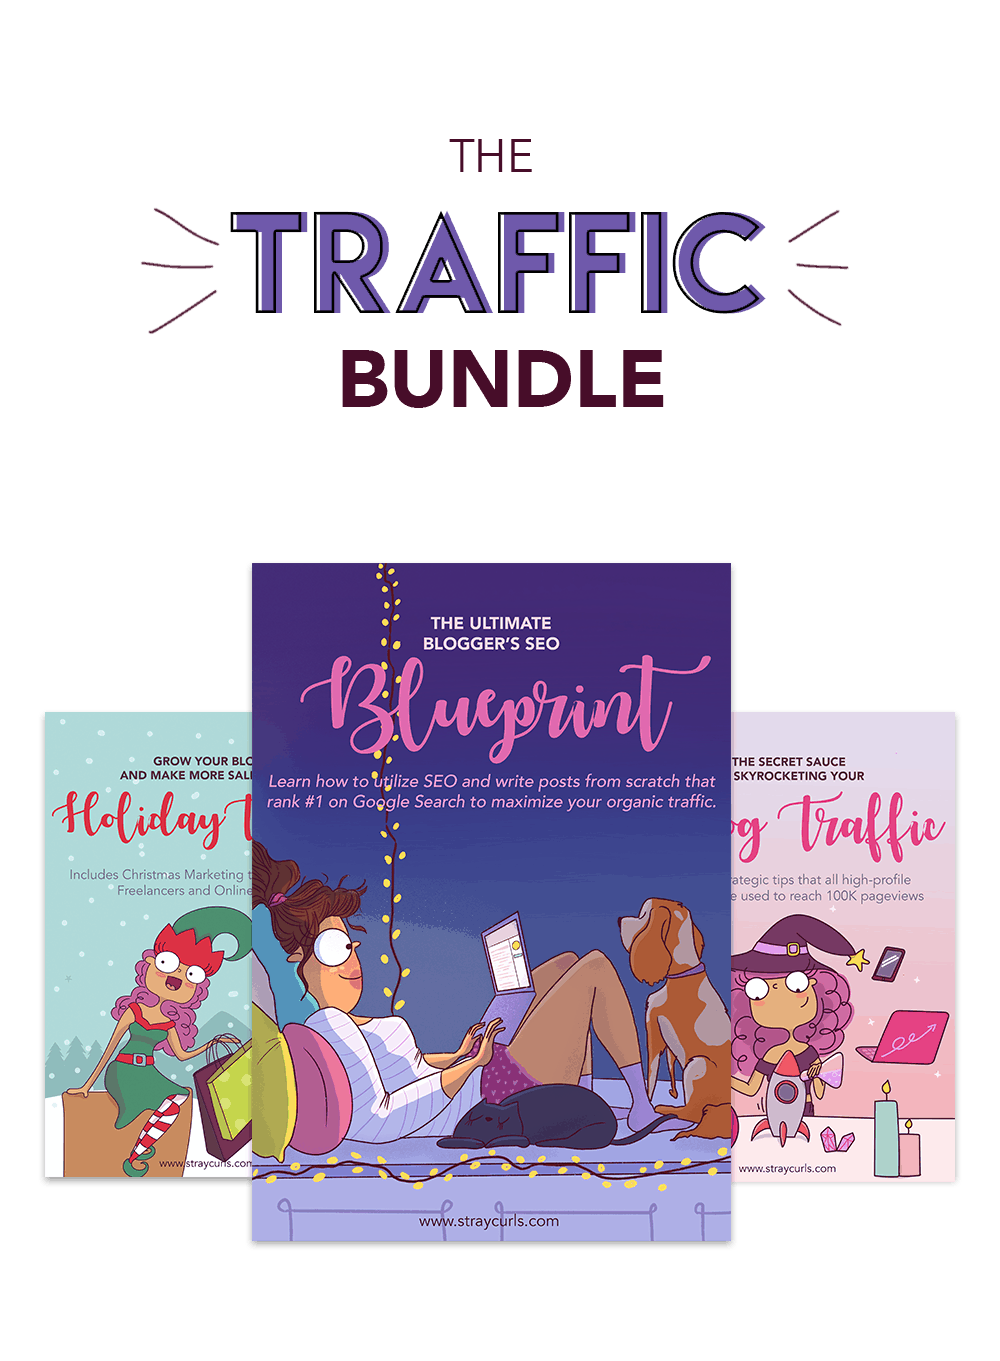 Introducing the traffic bundle to help you write SEO optimized posts and increase your traffic.